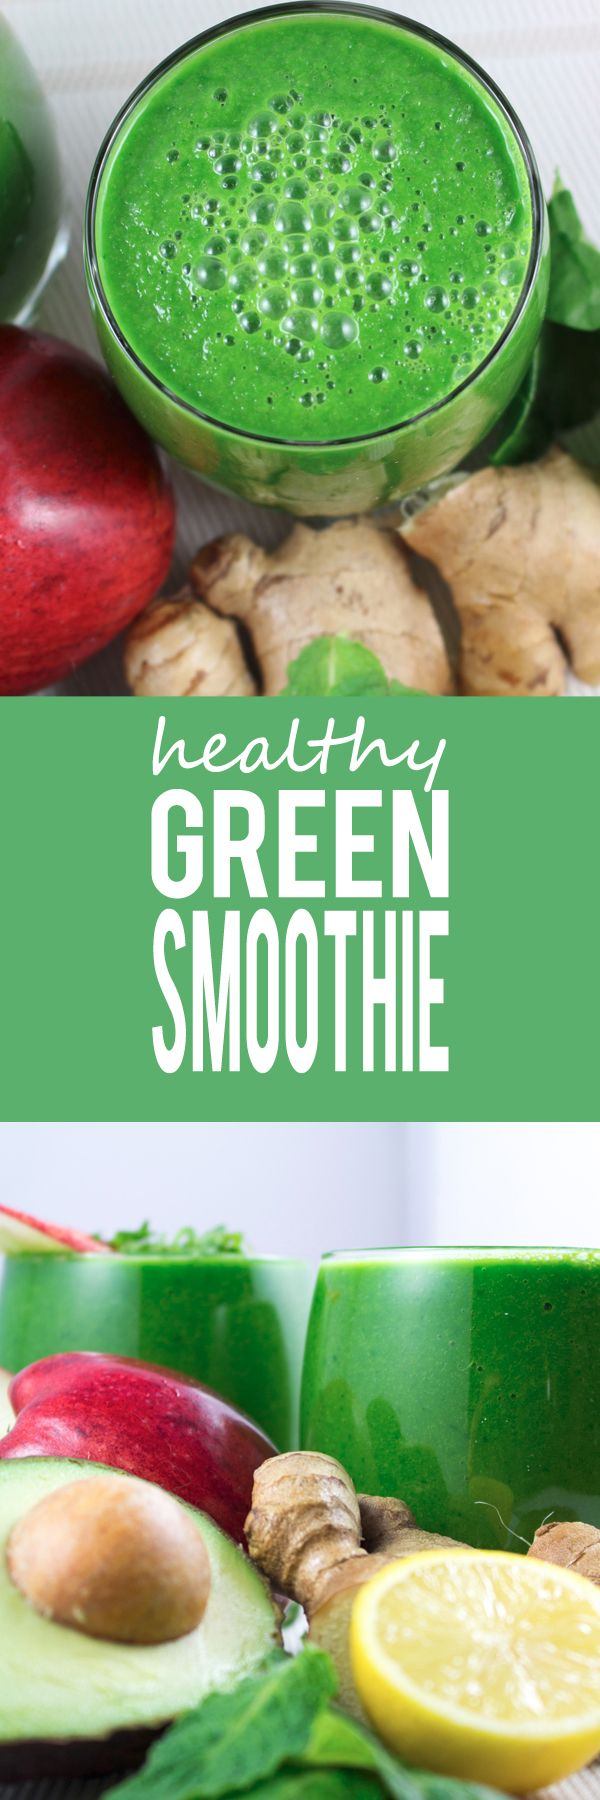 This healthy green smoothie recipe is packed with vitamins and nutrients to keep your immune system strong. Avocado, spinach, apple, mint, ginger and lemon juic